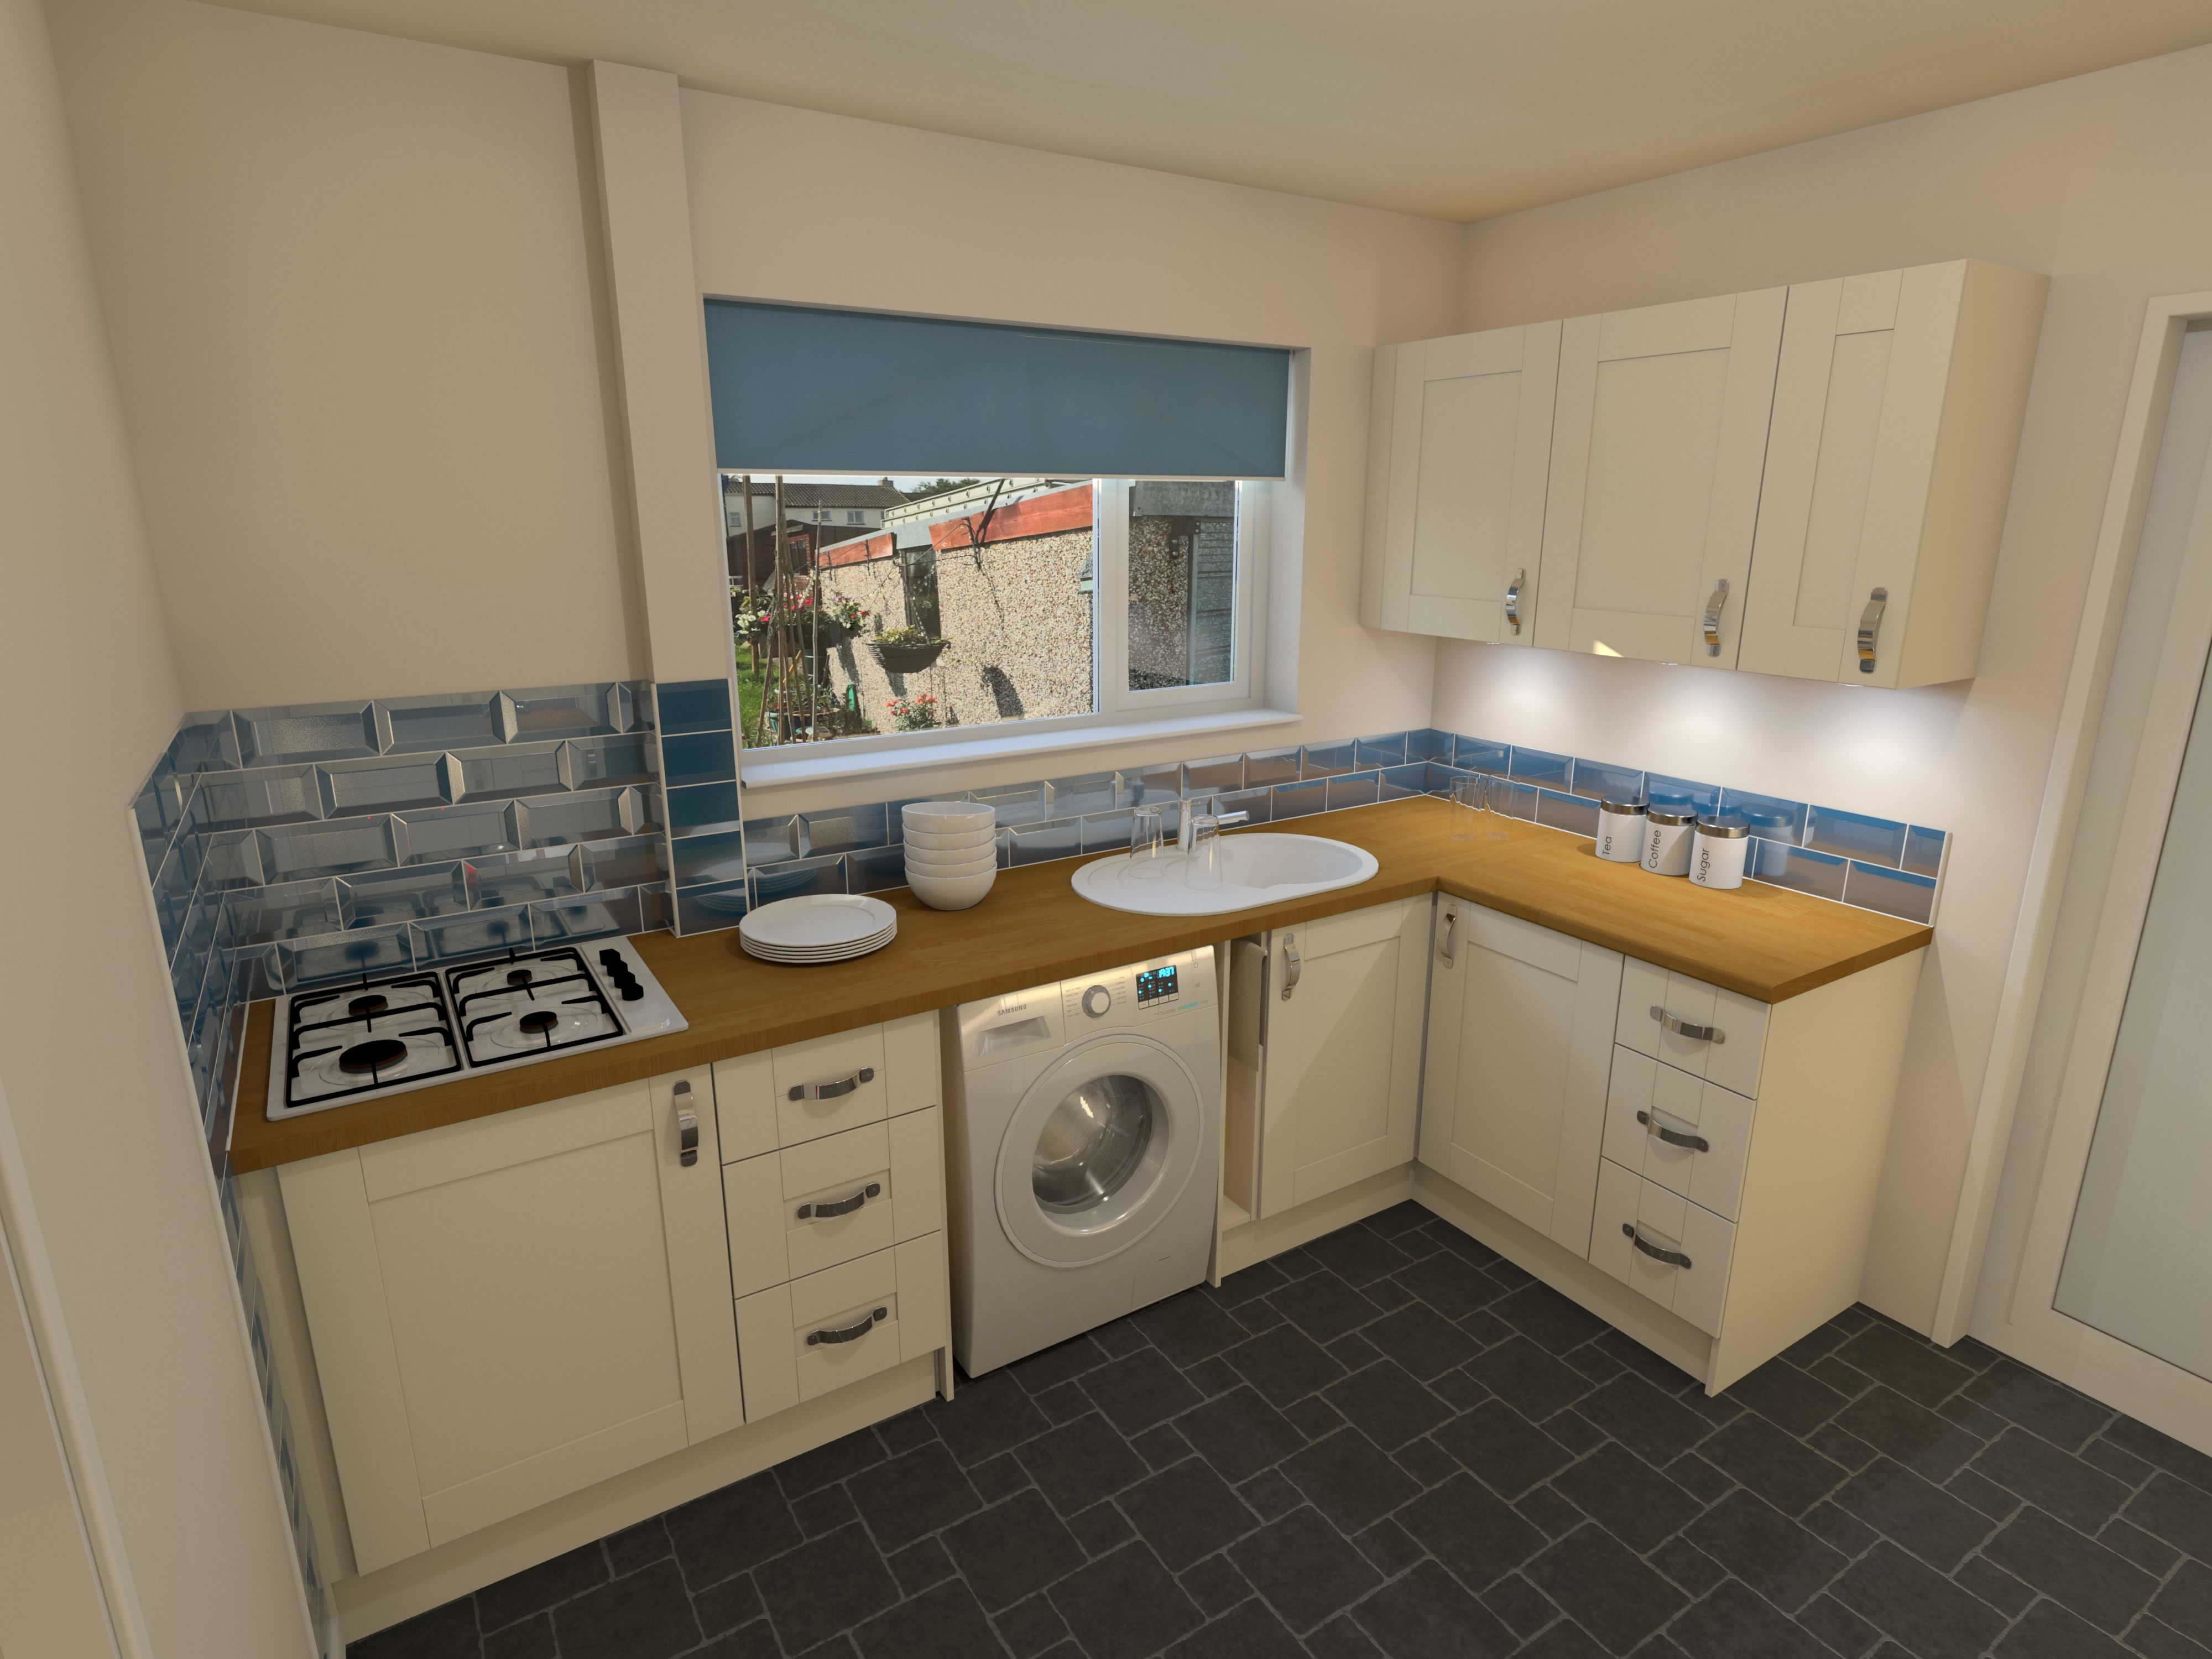 AutoCAD Kitchen Design Idea. Rendered on Autodesk 360. | AutoCAD 360 ...